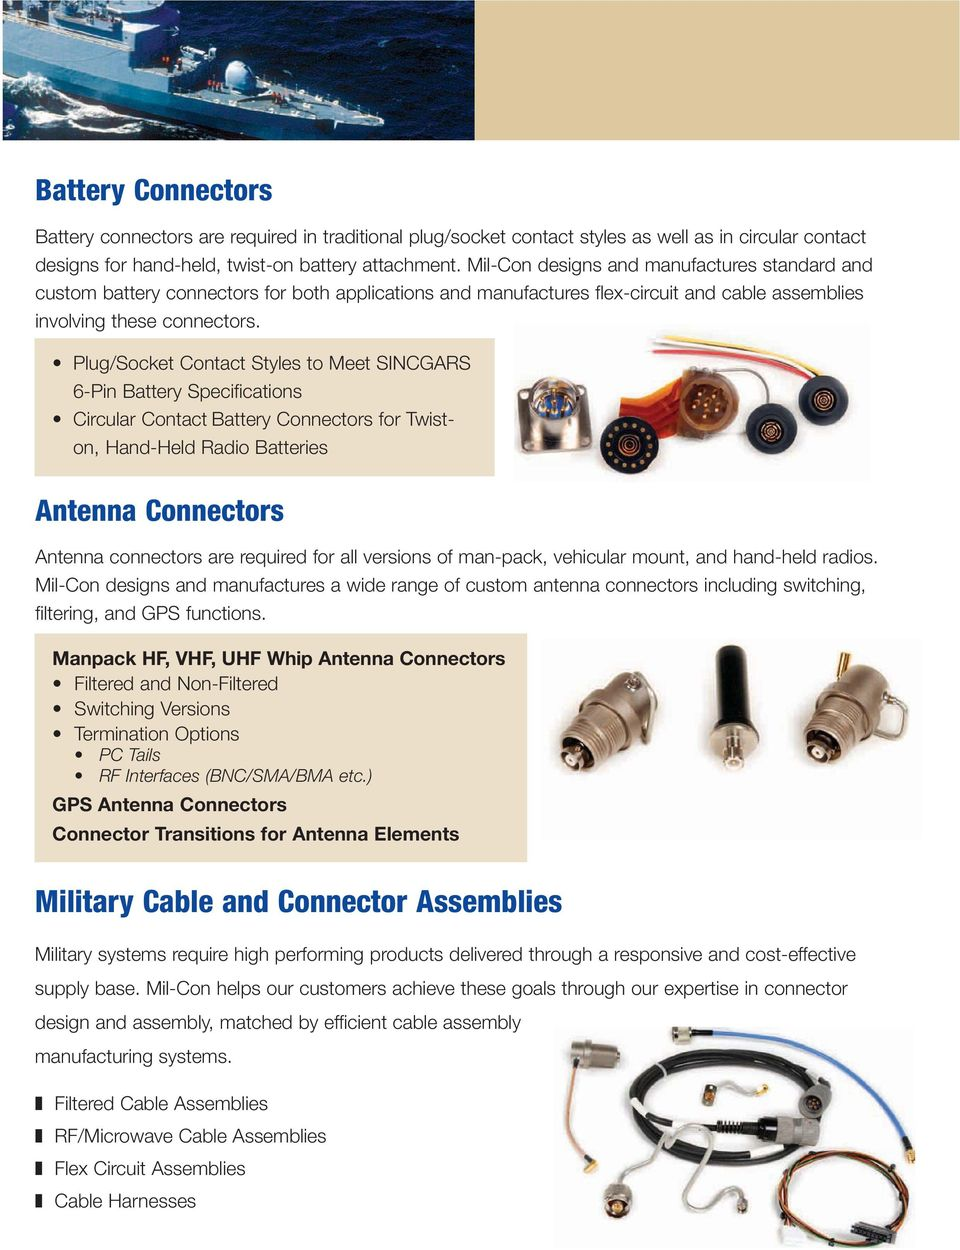 Plug/Socket Contact Styles to Meet SINCGARS 6-Pin Battery Specifications Circular Contact Battery Connectors for Twiston, Hand-Held Radio Batteries Antenna Connectors Antenna connectors are required